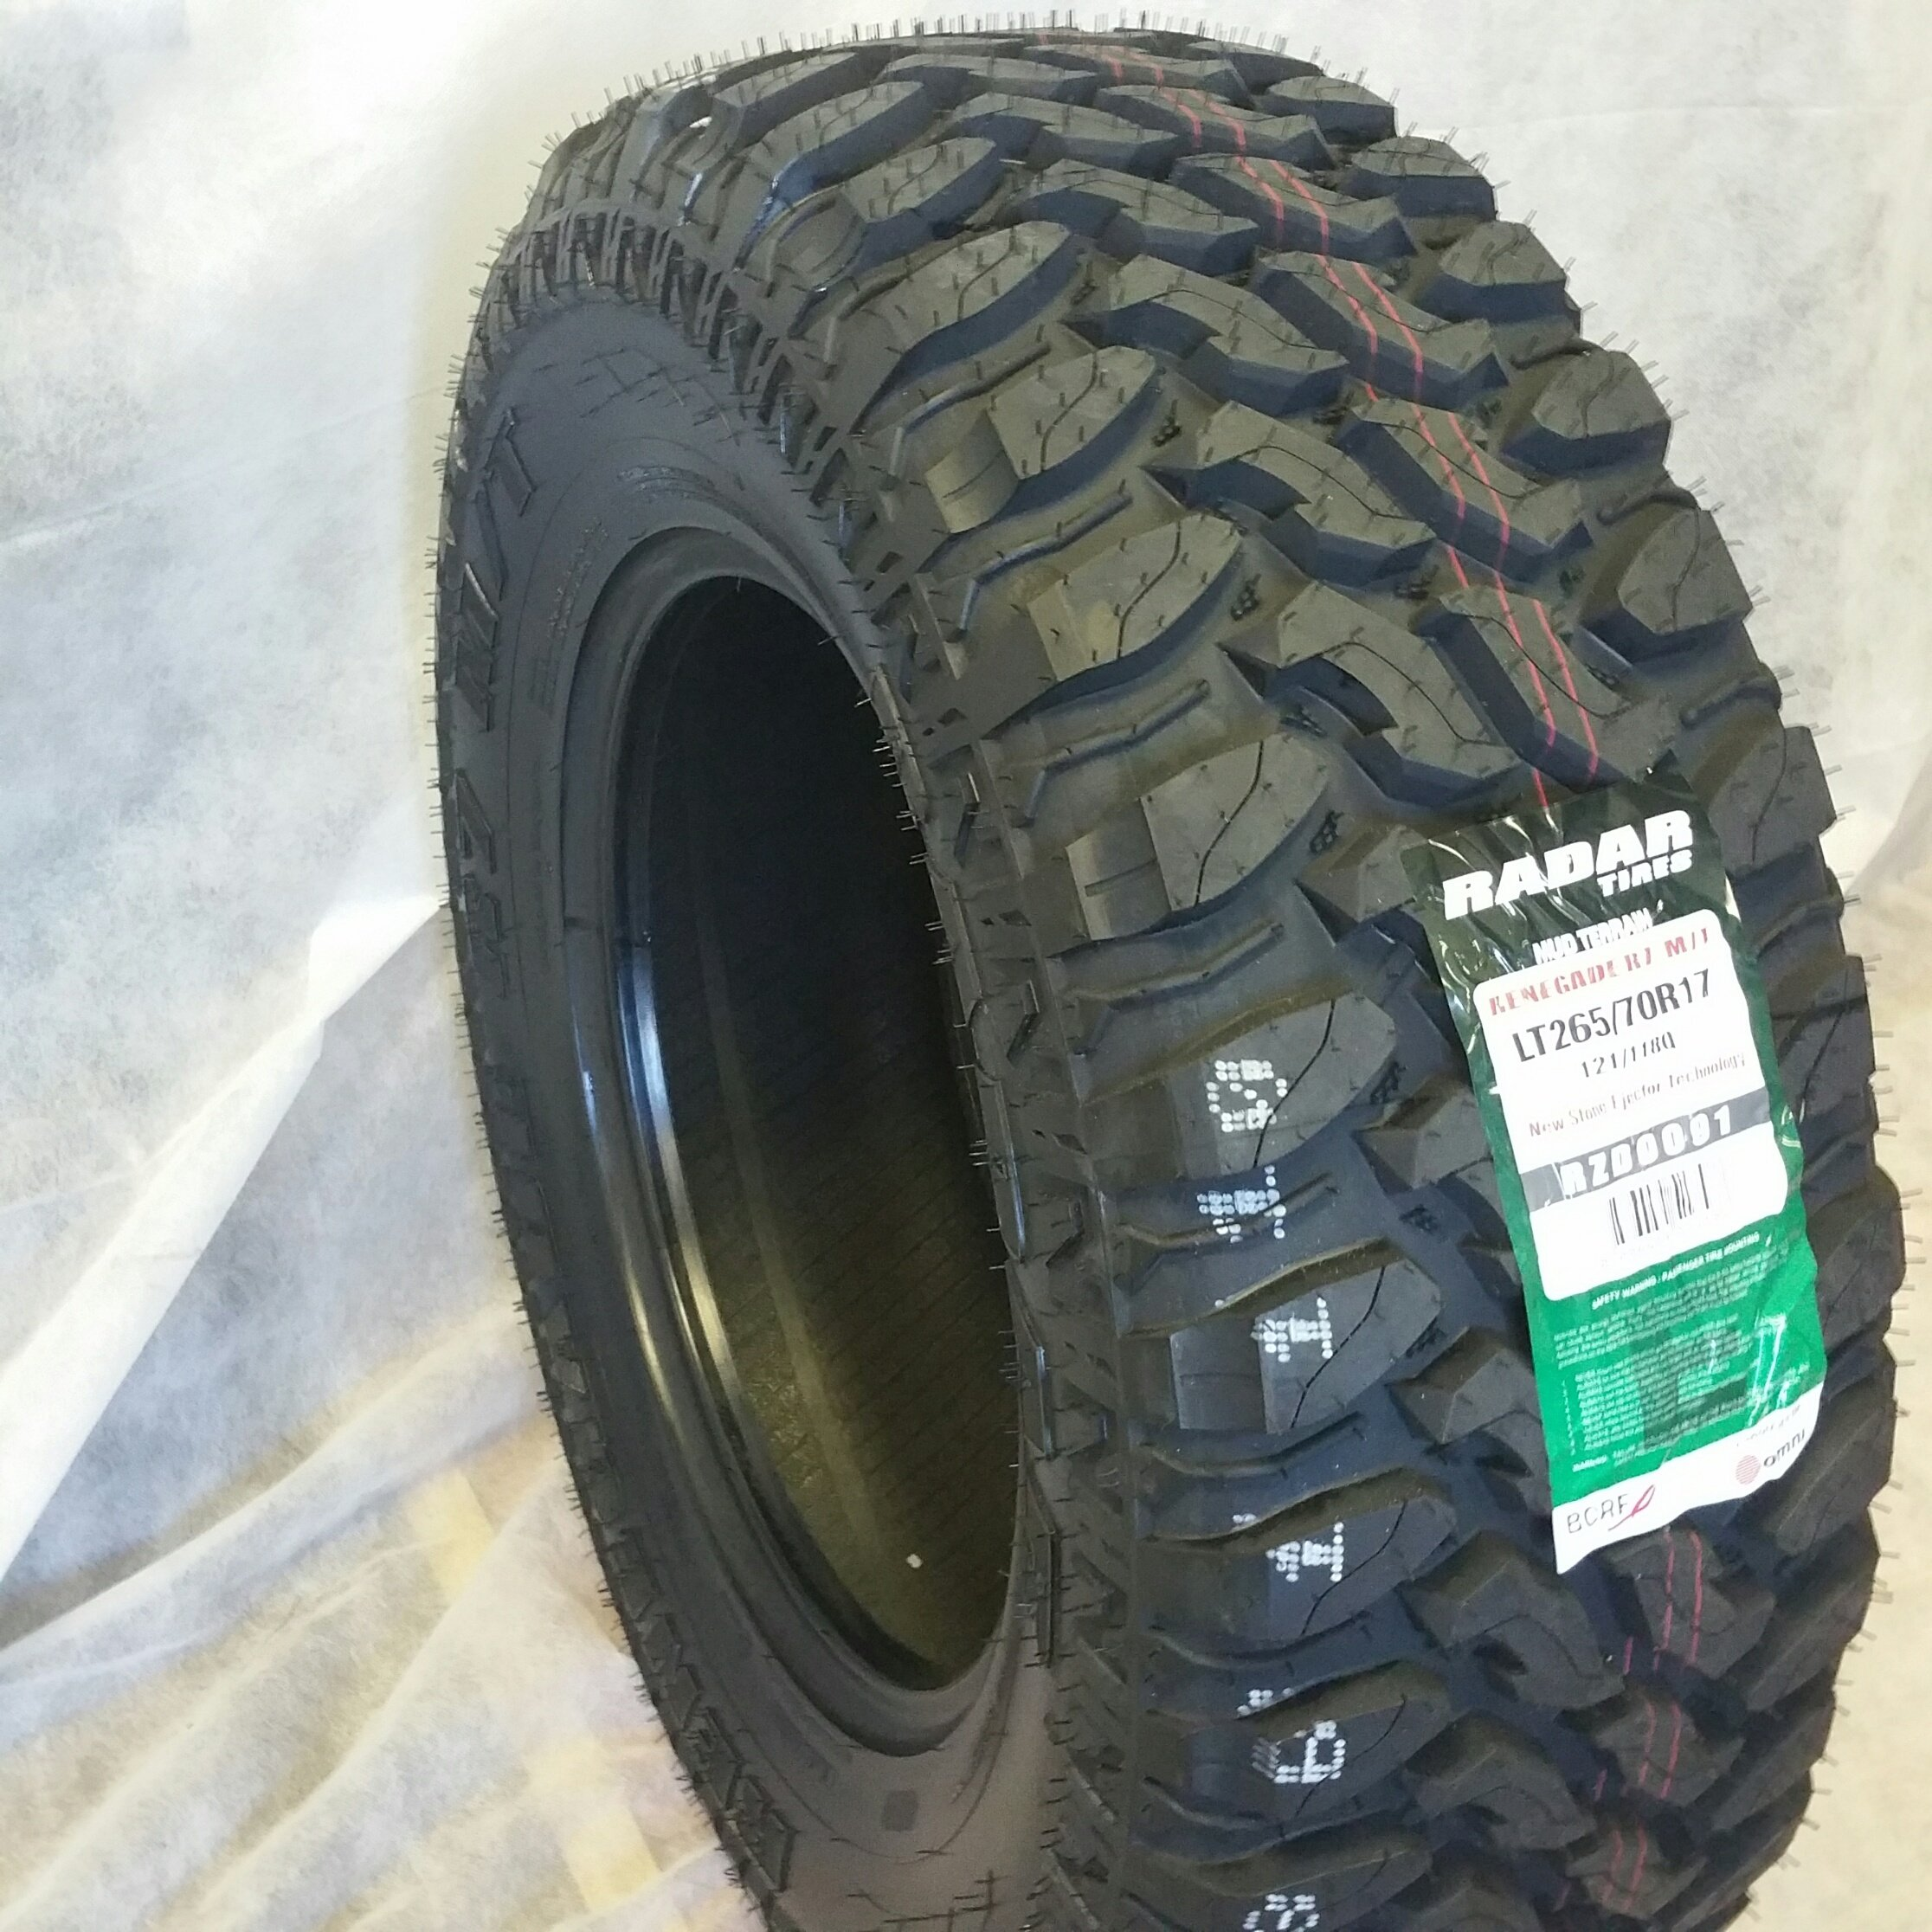 LT 265/70R17 (1-TIRE) RADAR RENEGADE M/T 10 PLY PREMIUM QUALITY 265/70R17 LOAD RANGE E by ROAD WARRIOR (Image #1)